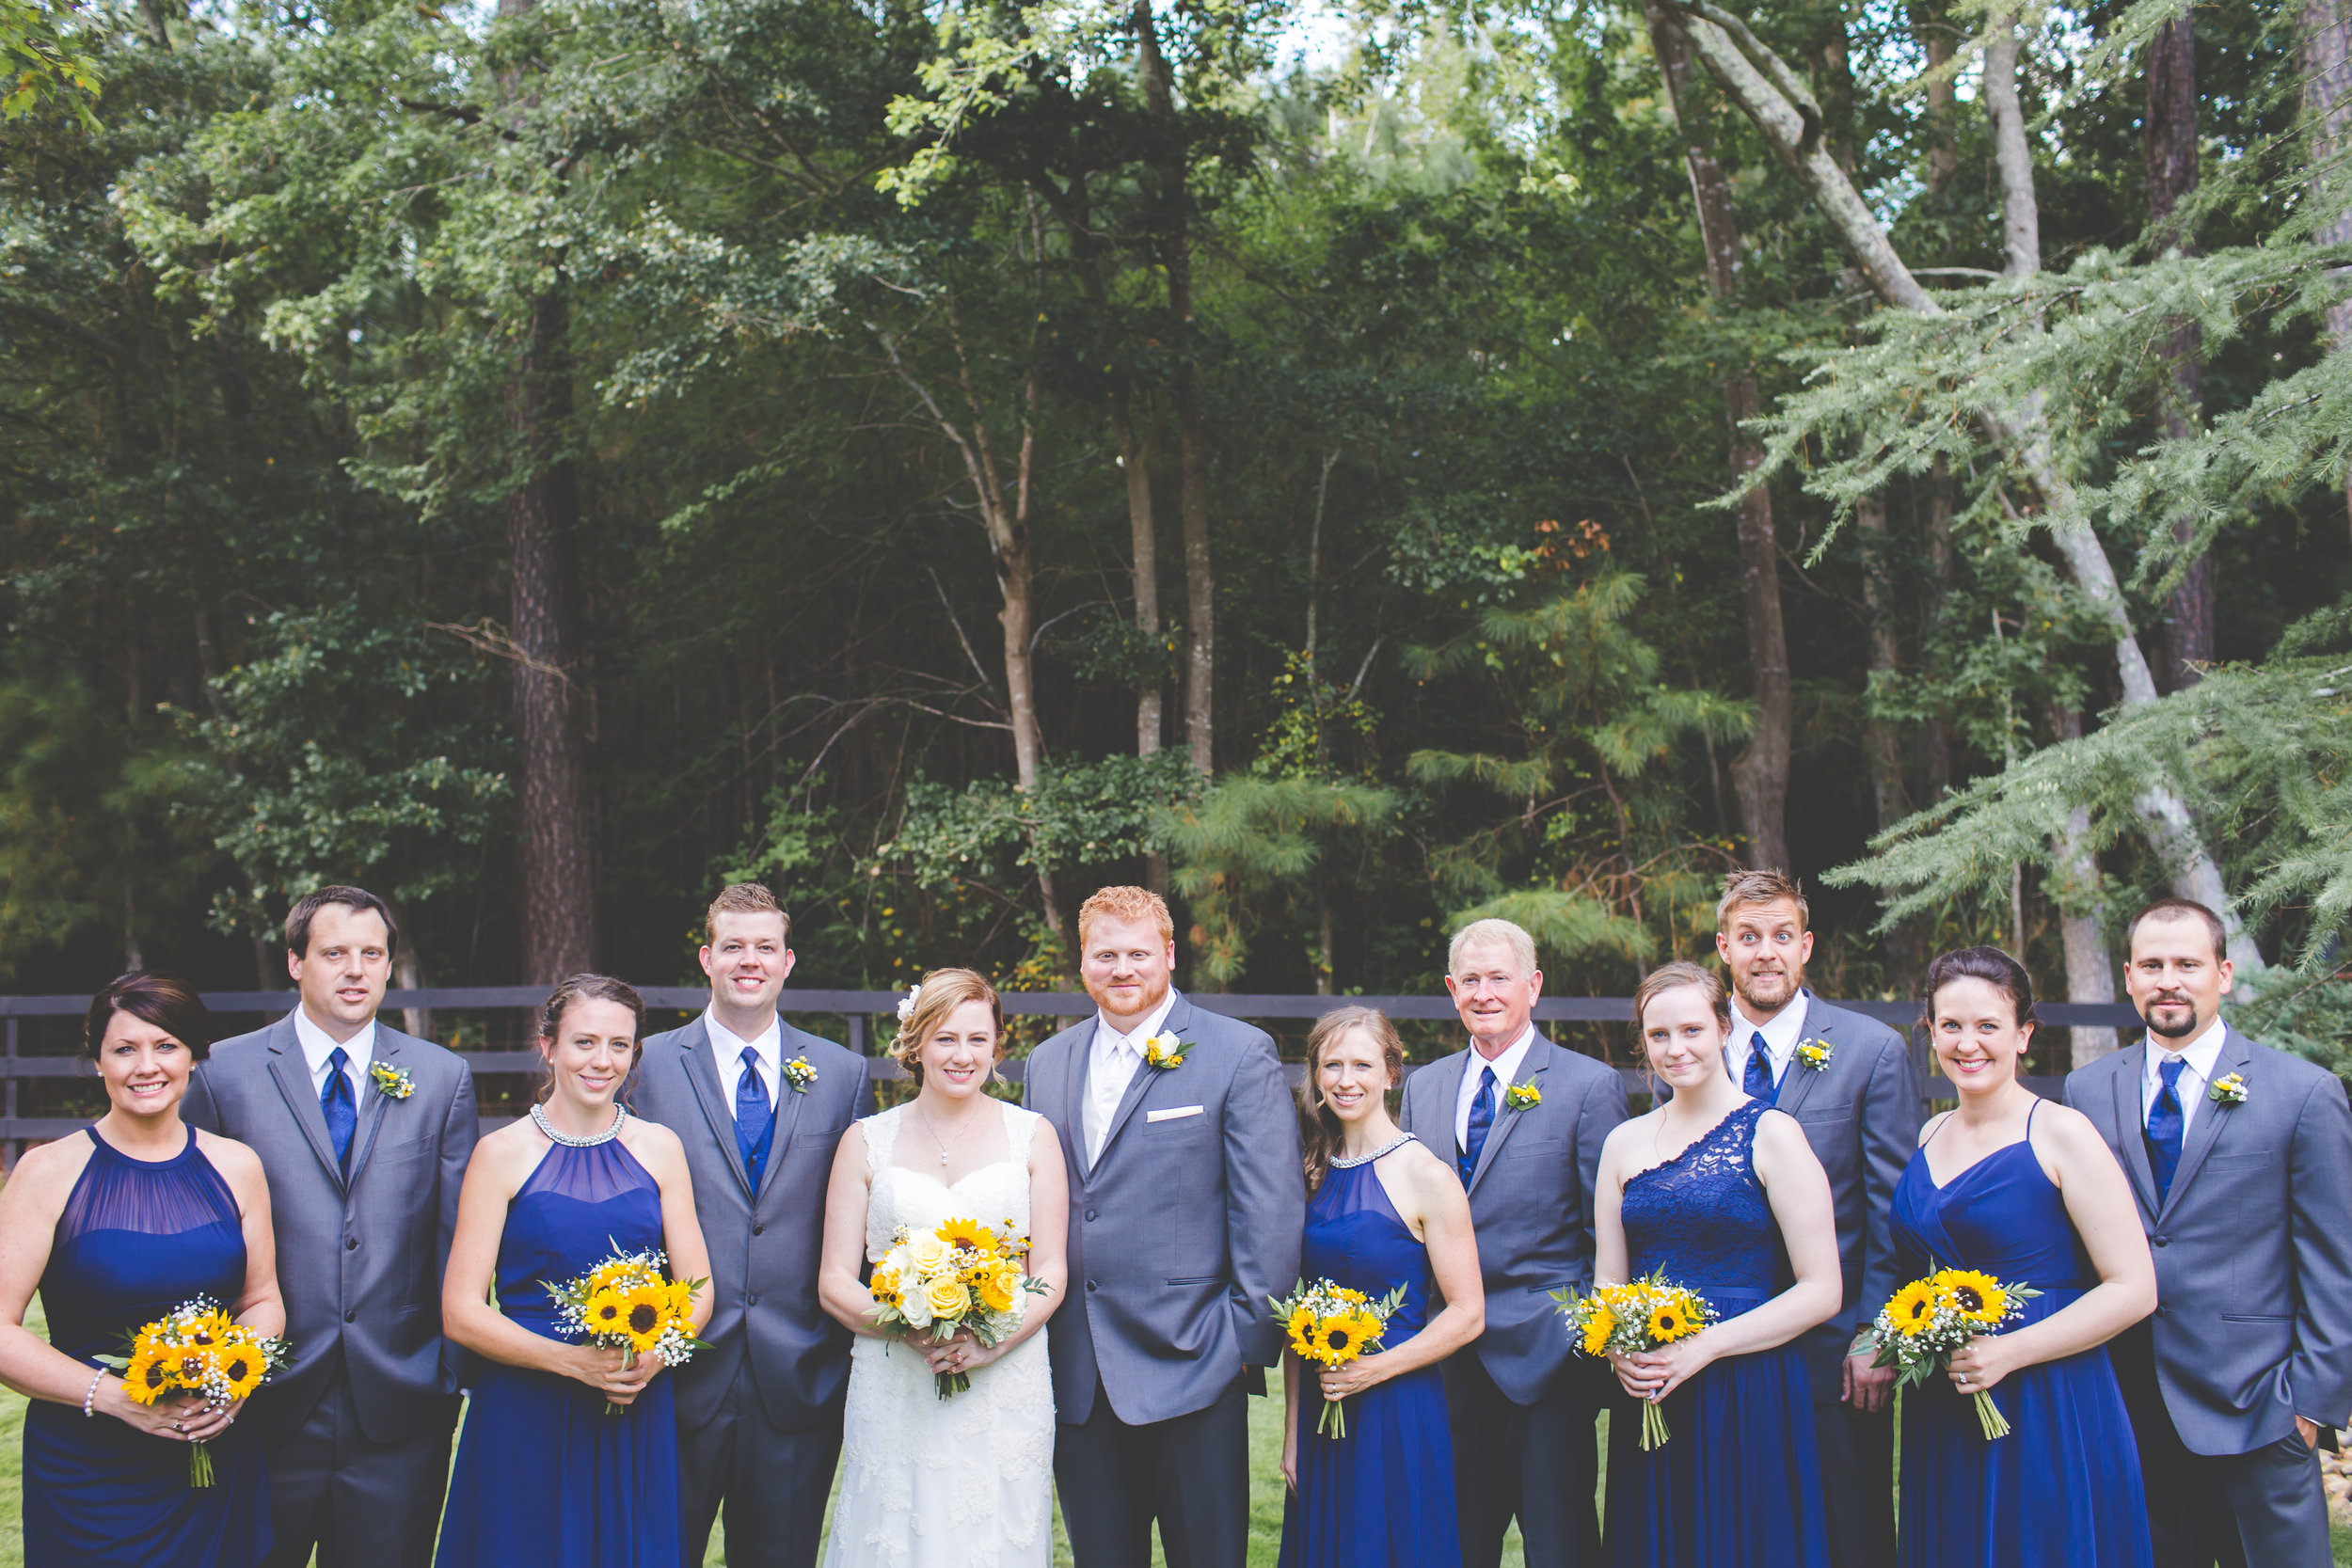 Copy of Wedding party portraits